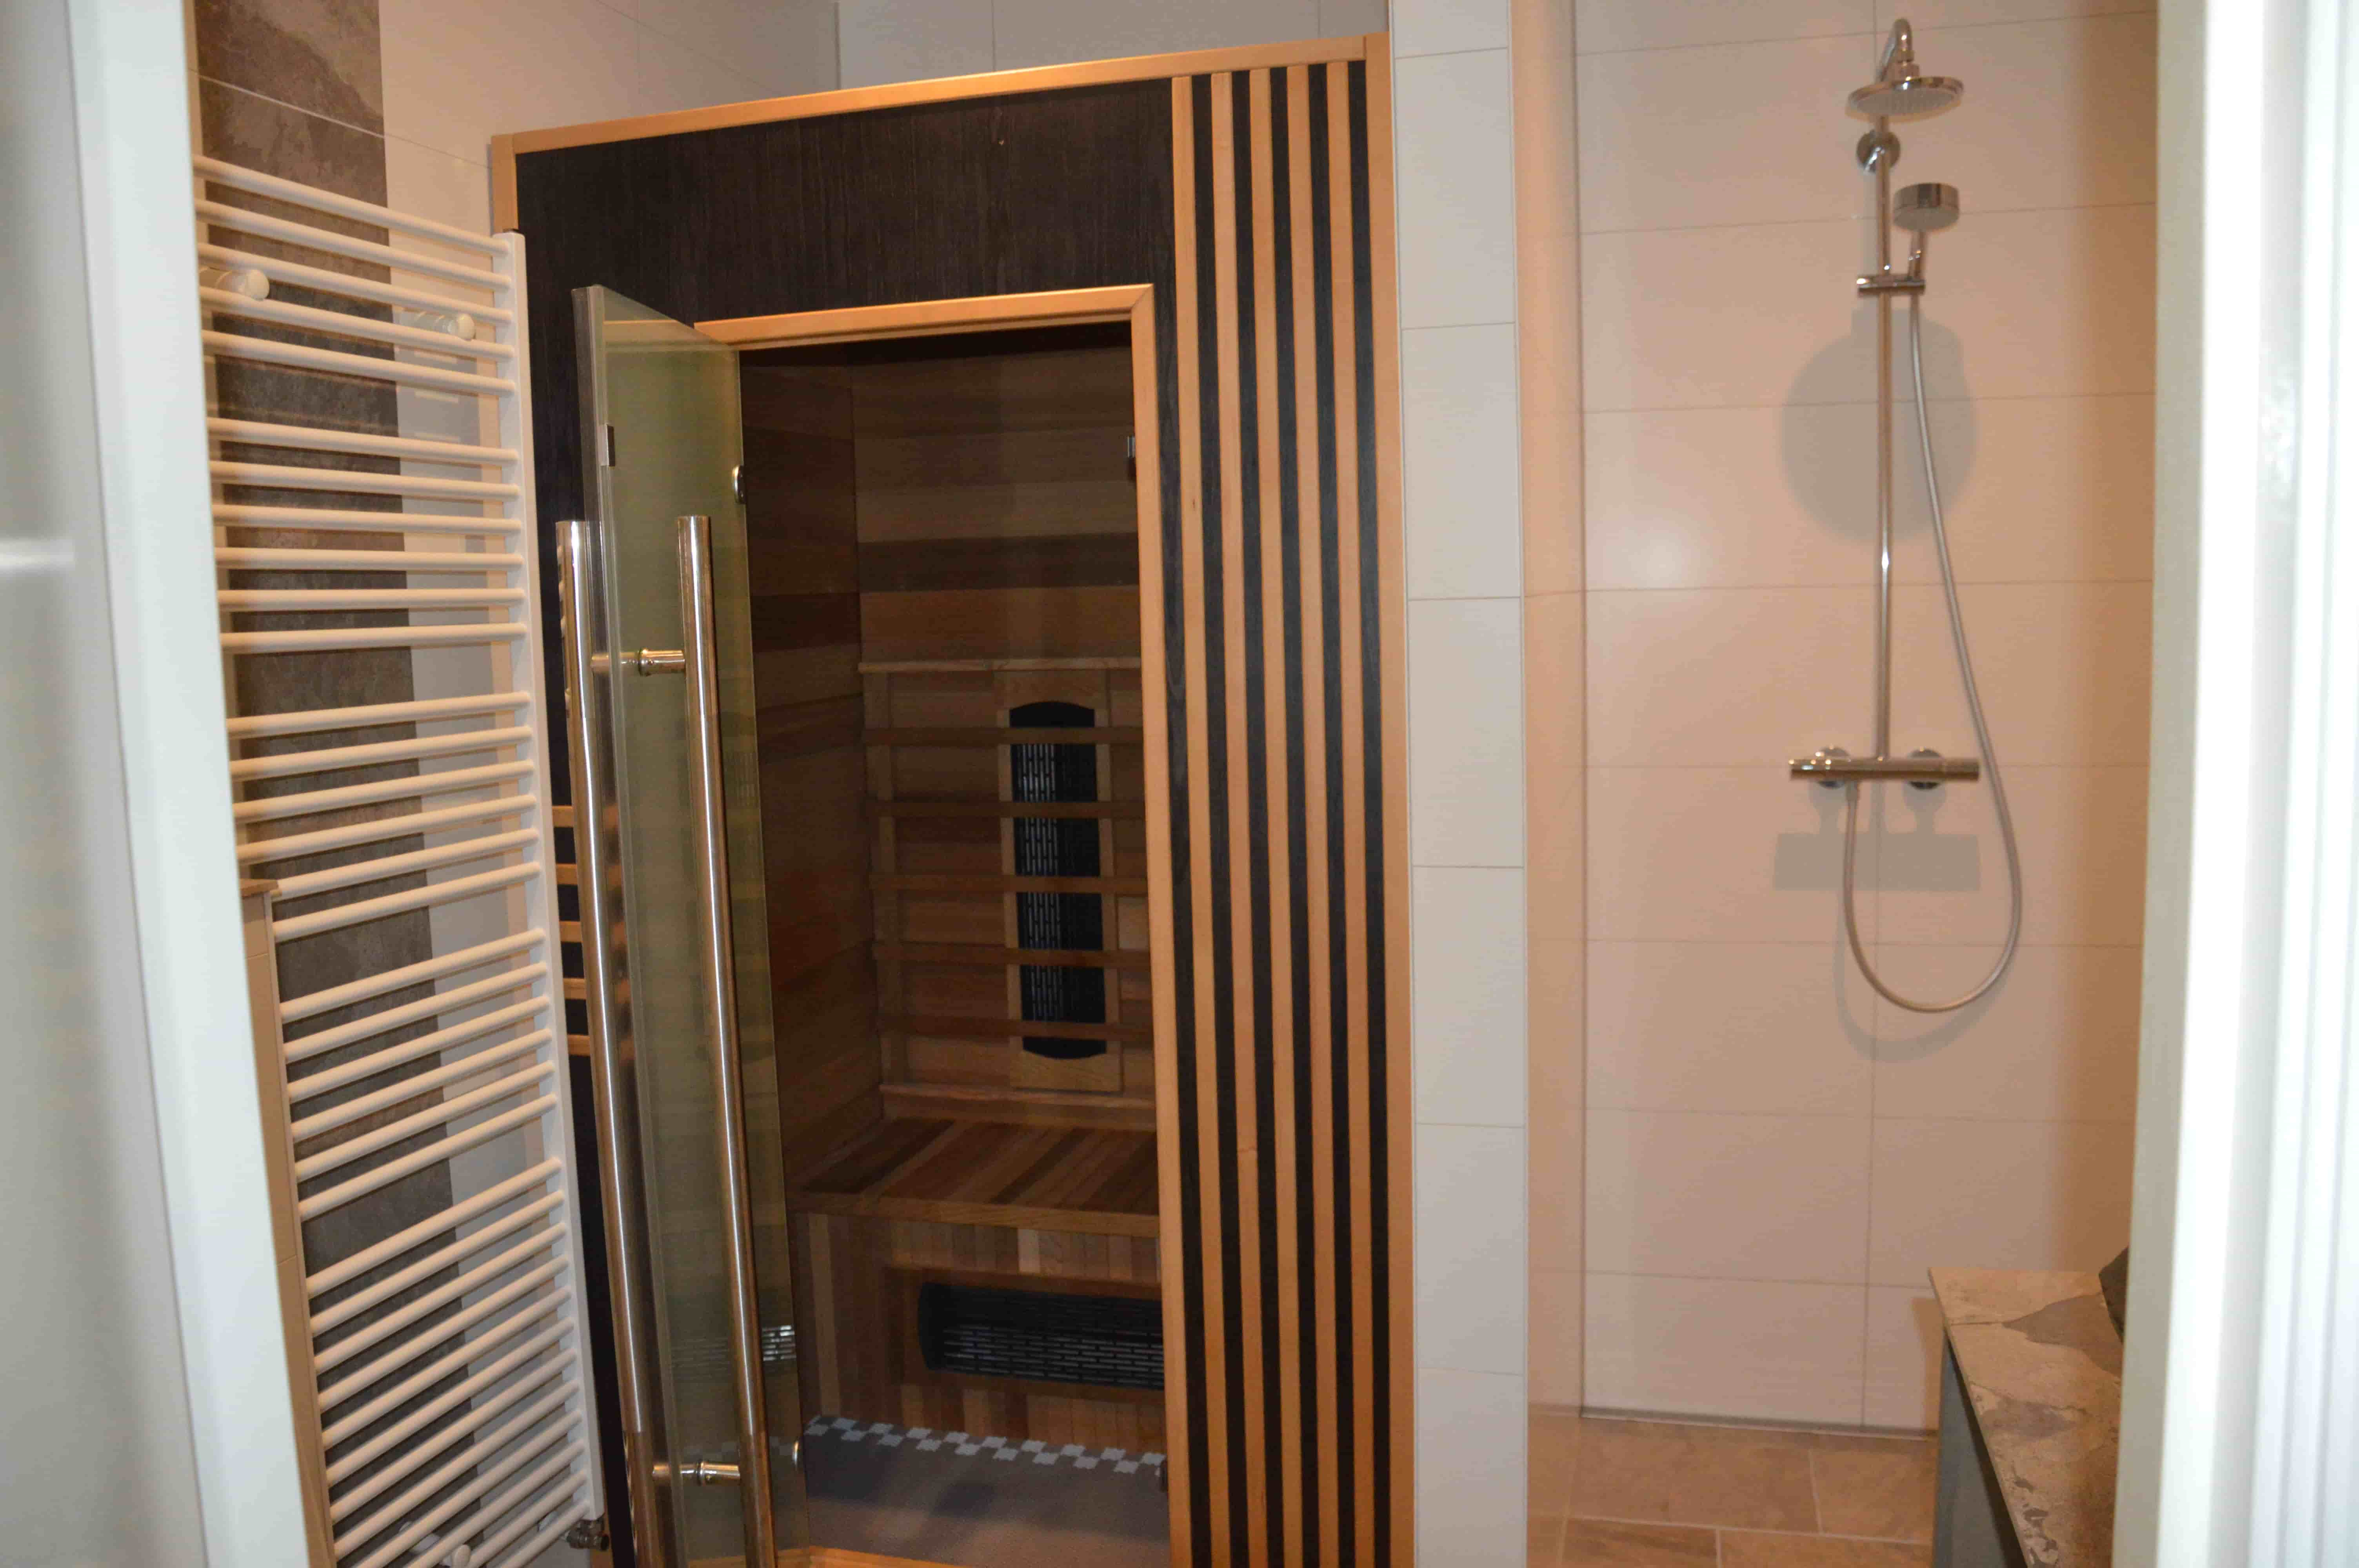 Wellness_appartement_sauna_Bed_&_Breakfast_Friesland_Noord_Nederland_Natuur_Rust_Vrijheid